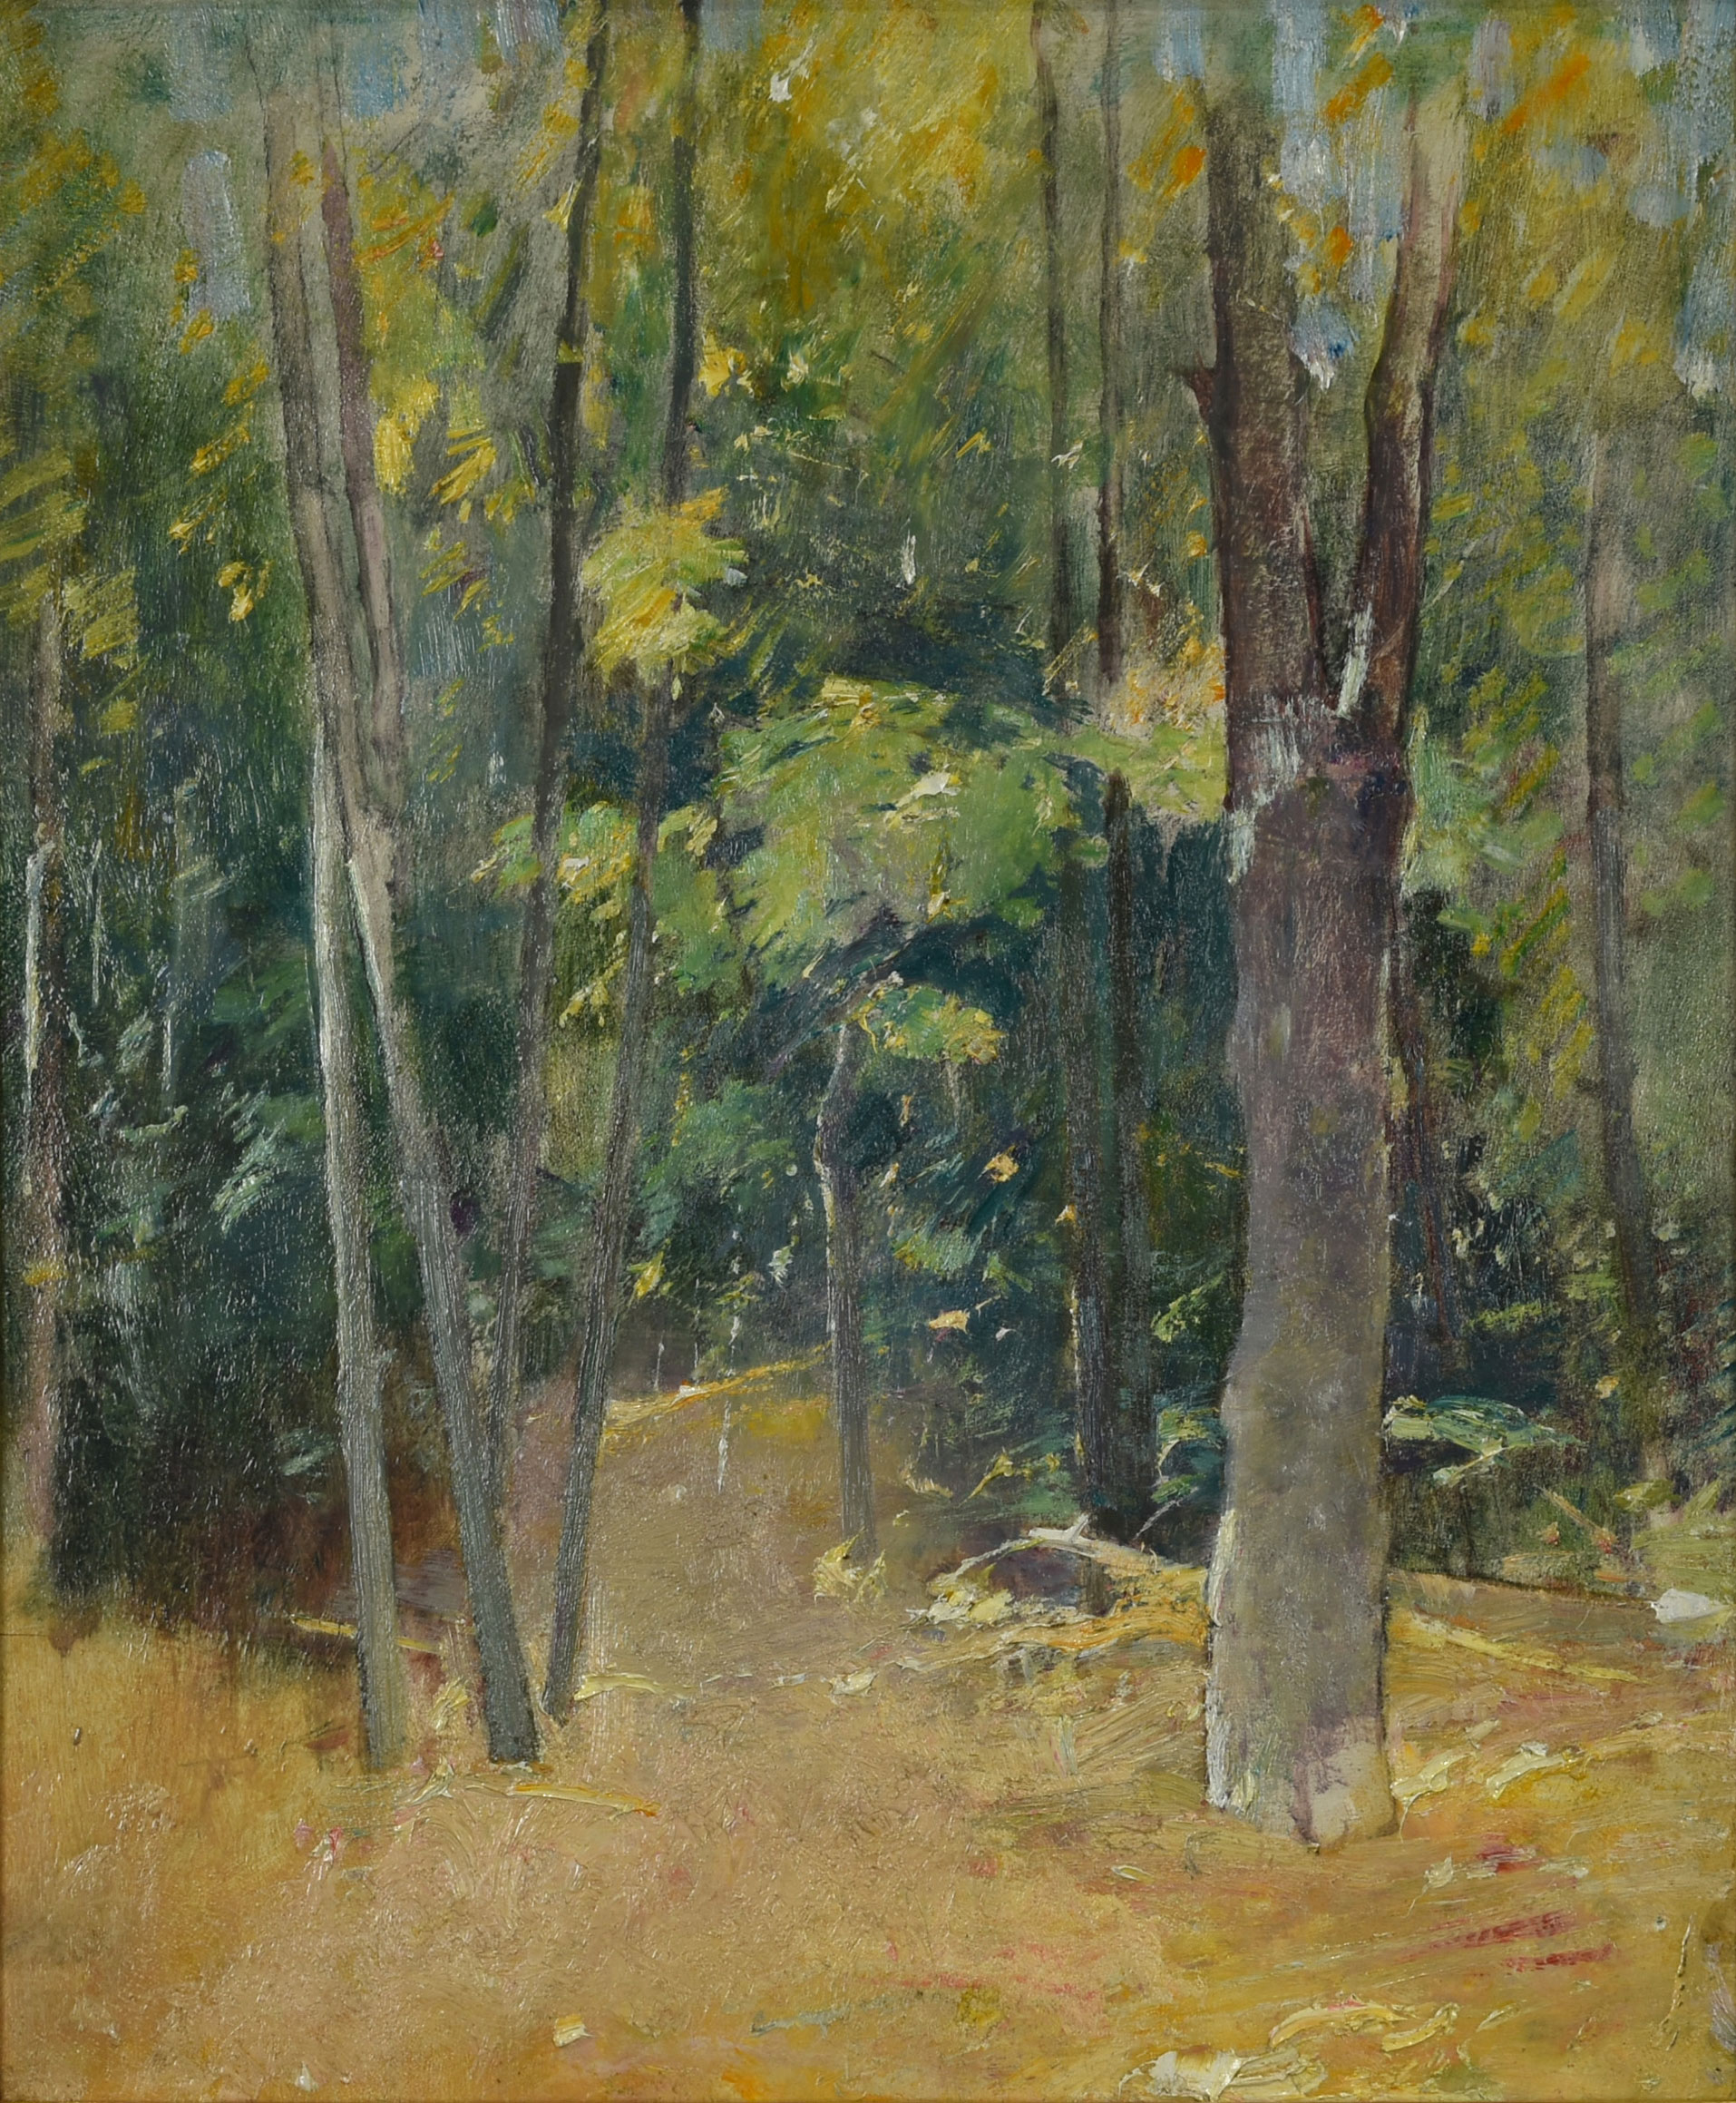 A landscape painting of a thicket.